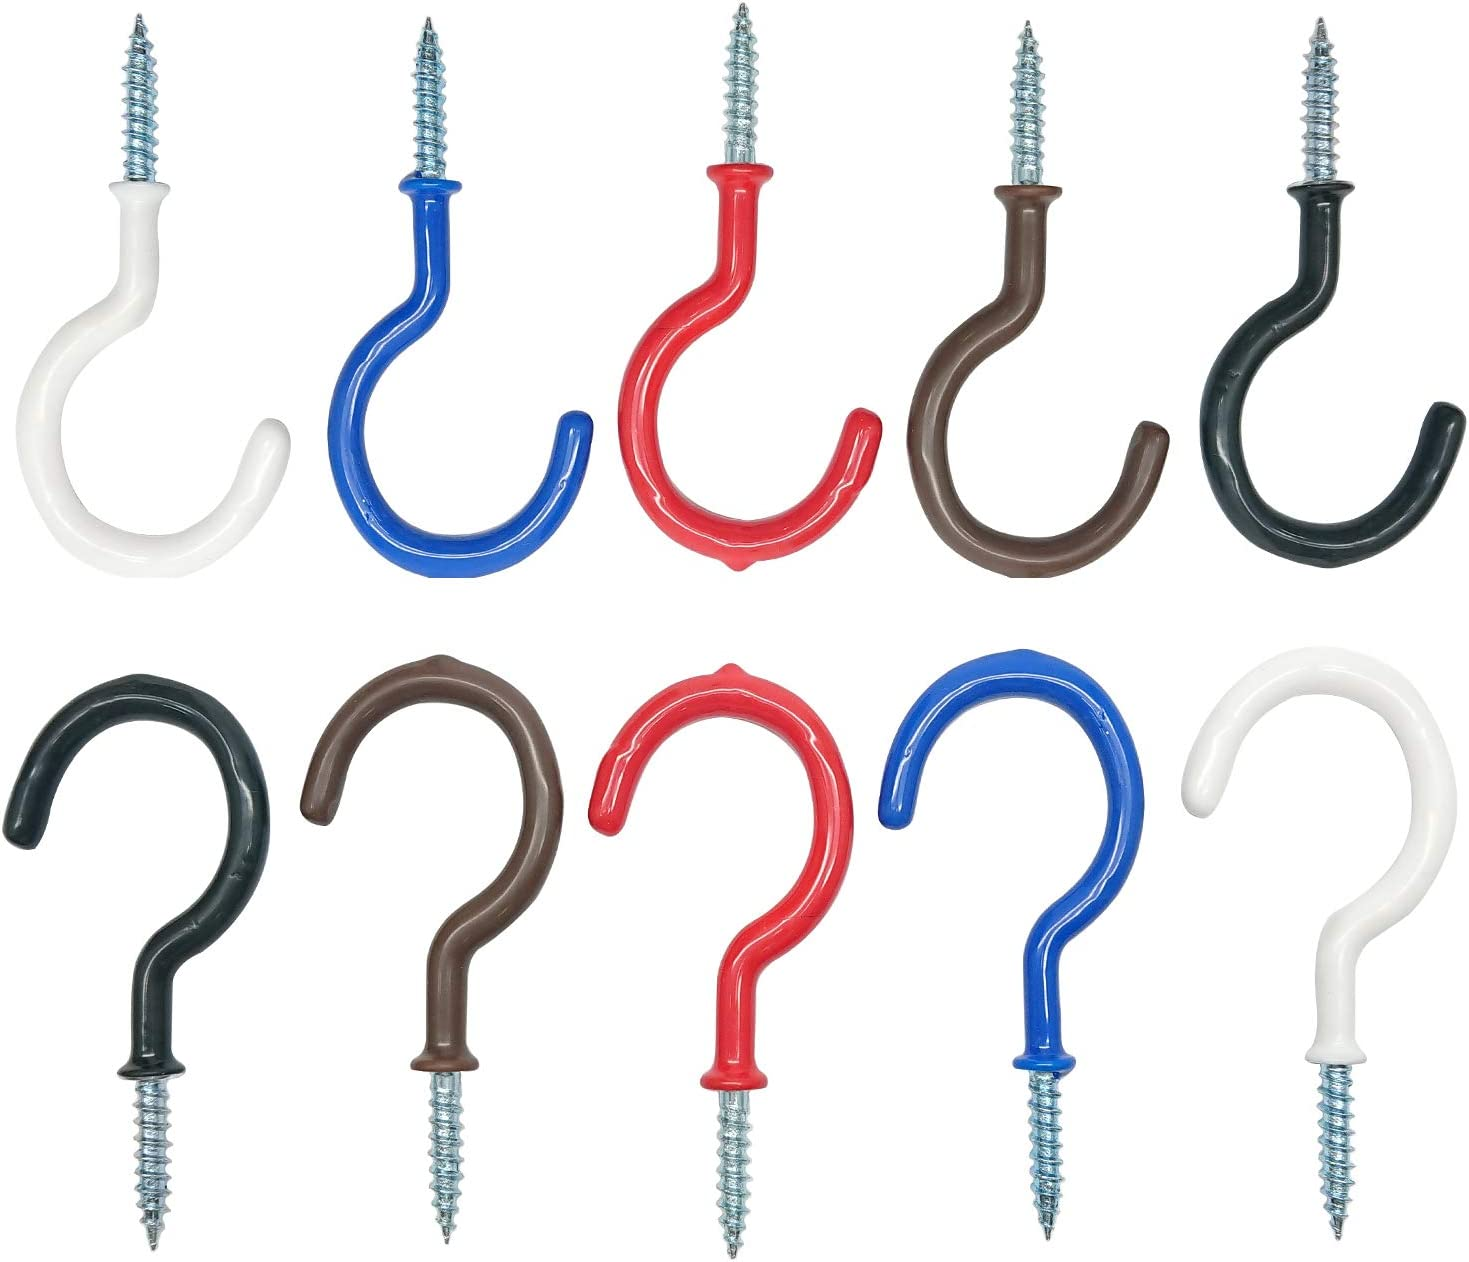 White Kitchen Hooks,Plant Hooks,Cup Hooks Great for Indoor /& Outdoor Use 2.9 Inches Ceiling Hooks,20 Pack Vinyl Coated Screw-in Wall Hooks